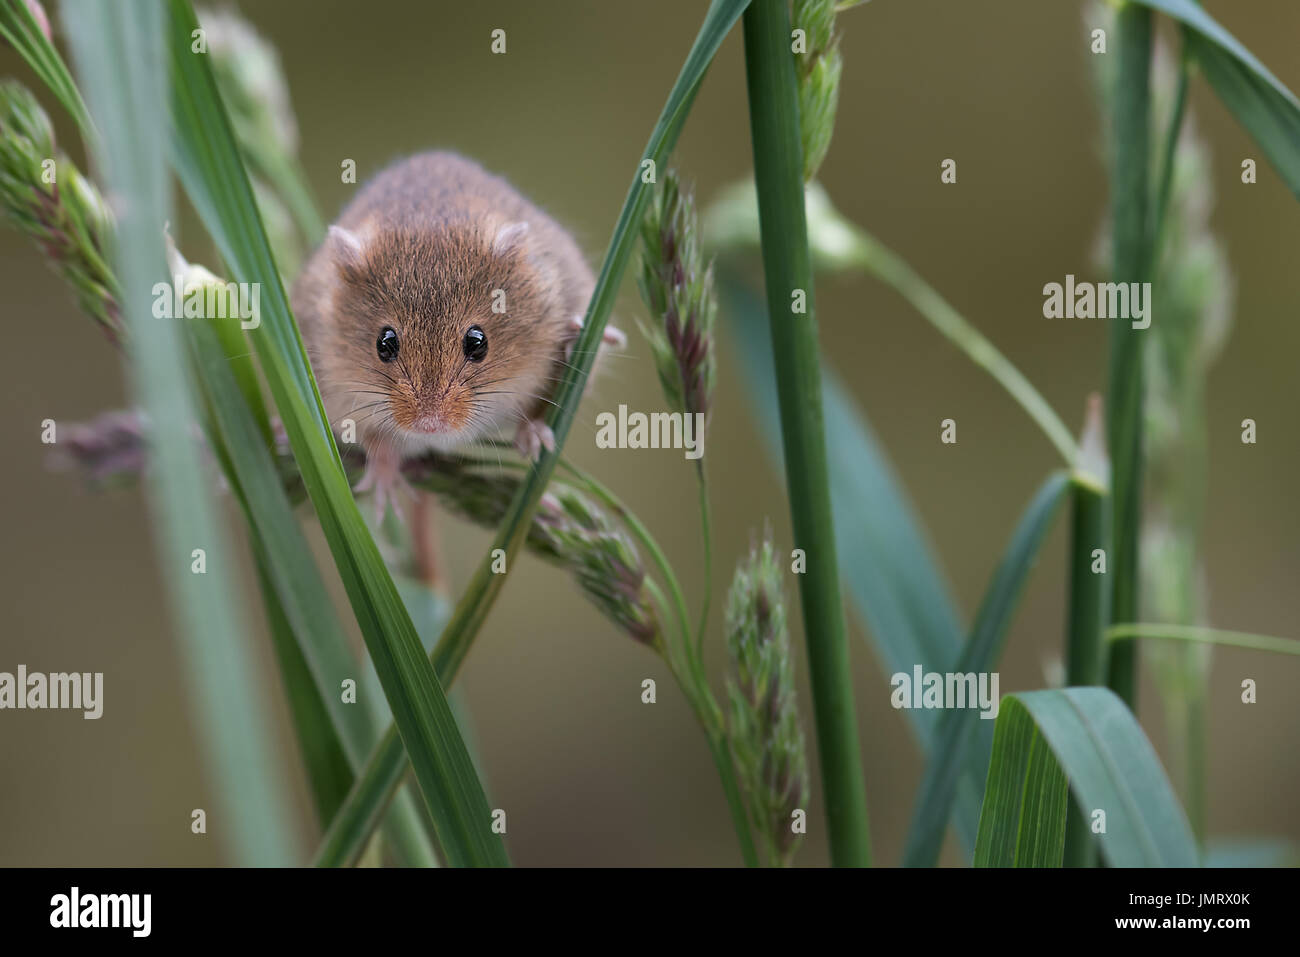 A small harvest mouse climbing up shoots of grass looking forward towards the viewer - Stock Image